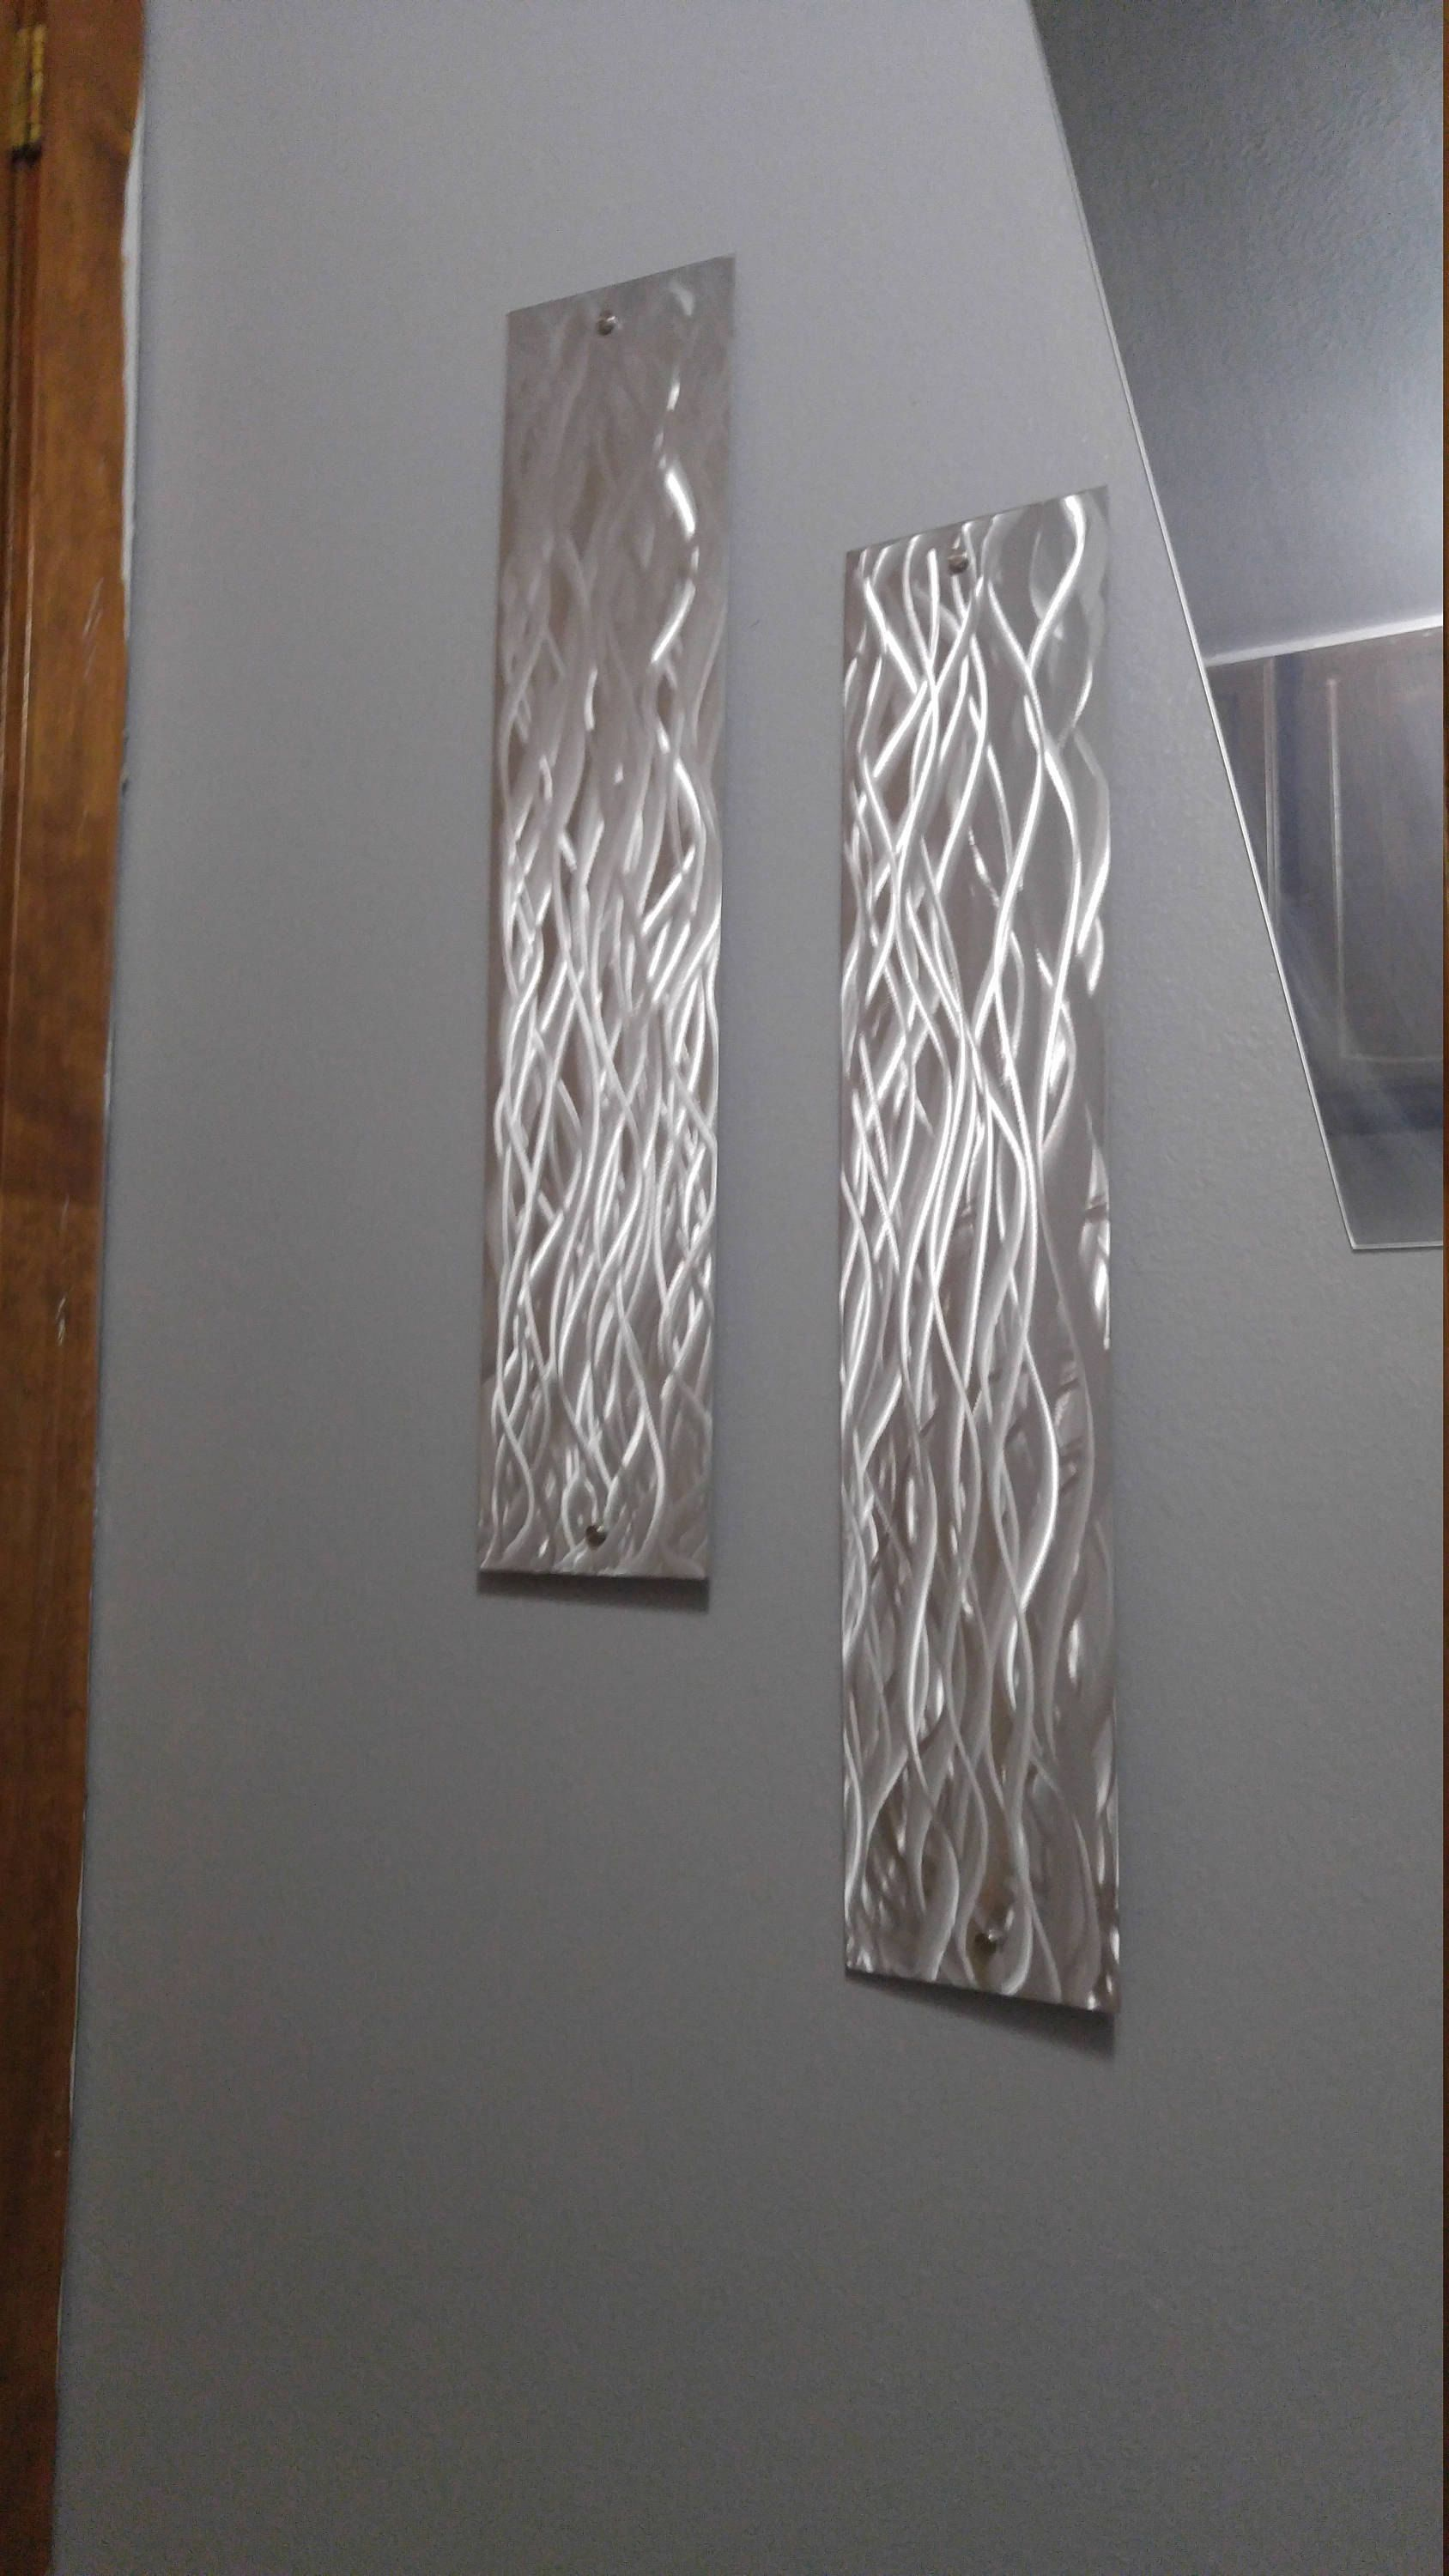 Modern Metal Wall Art Etsy Handmade Large Metal Art Decor Home